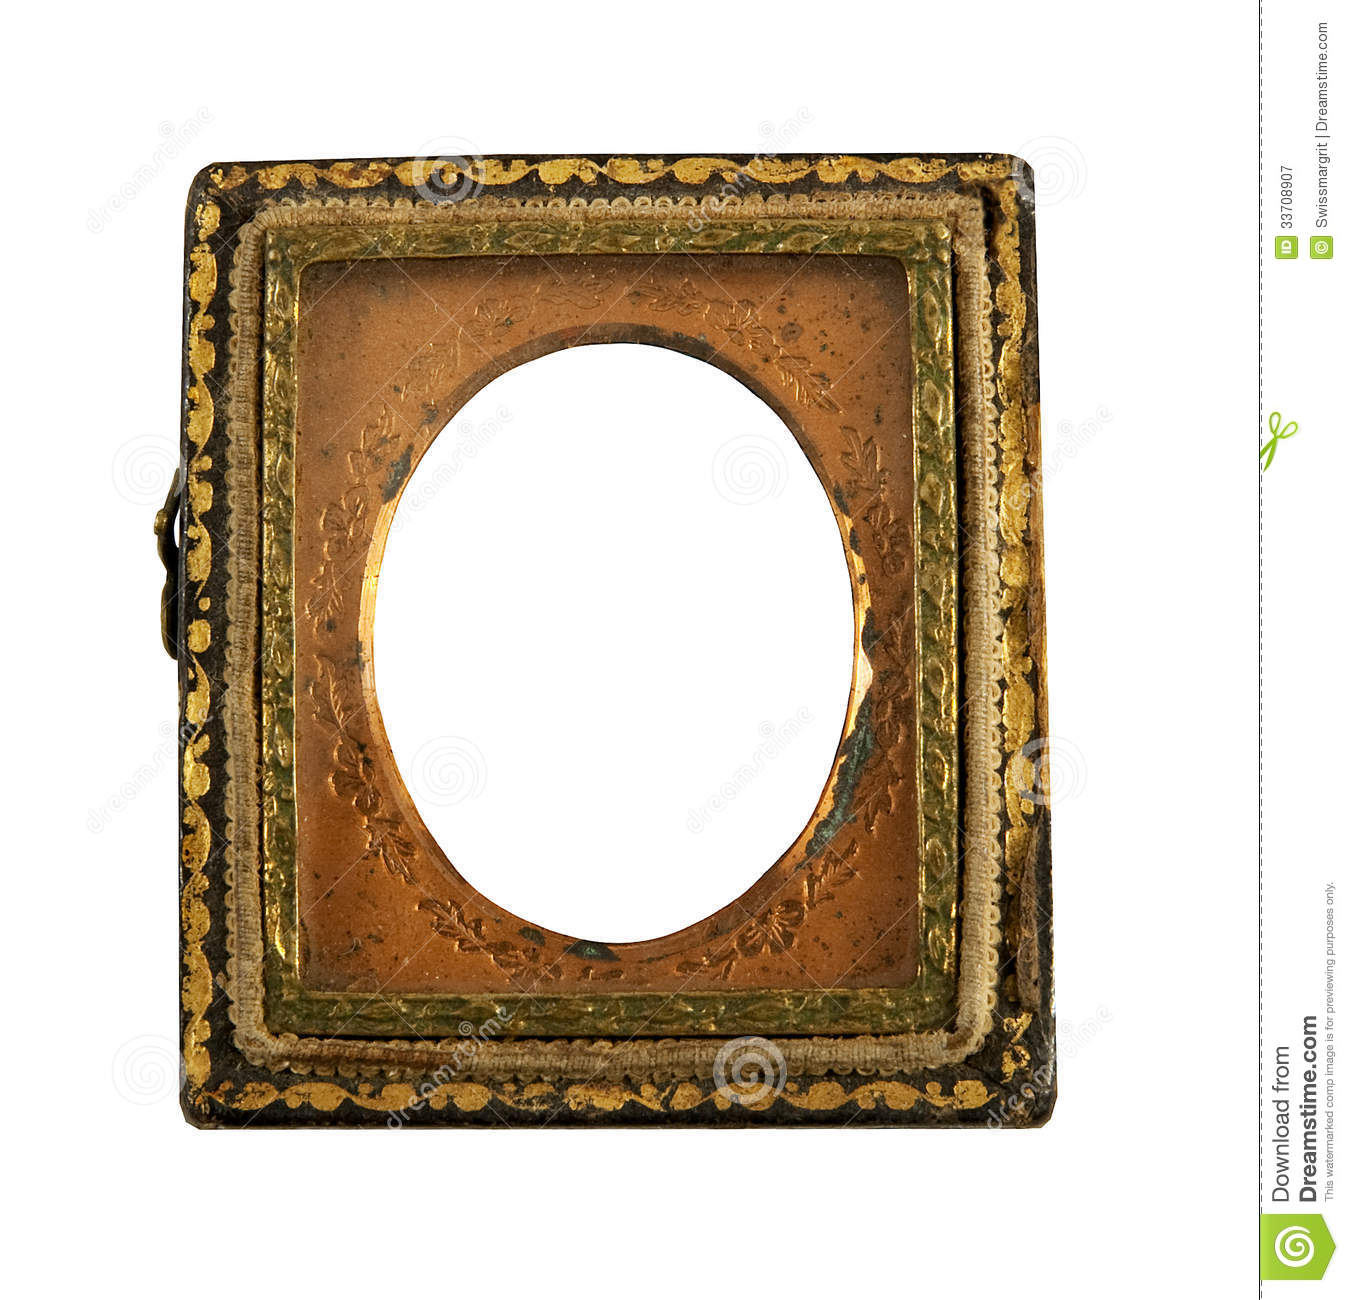 Antique Daguerreotype Metal Frame Royalty Free Stock